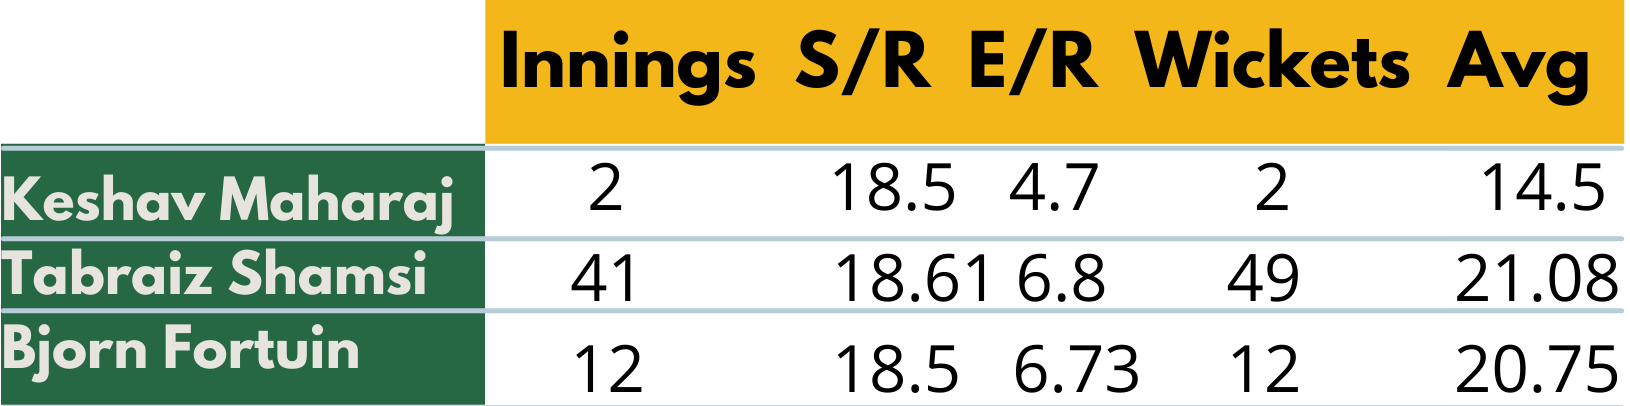 South African Spinners for T20 - cricket analysis stats